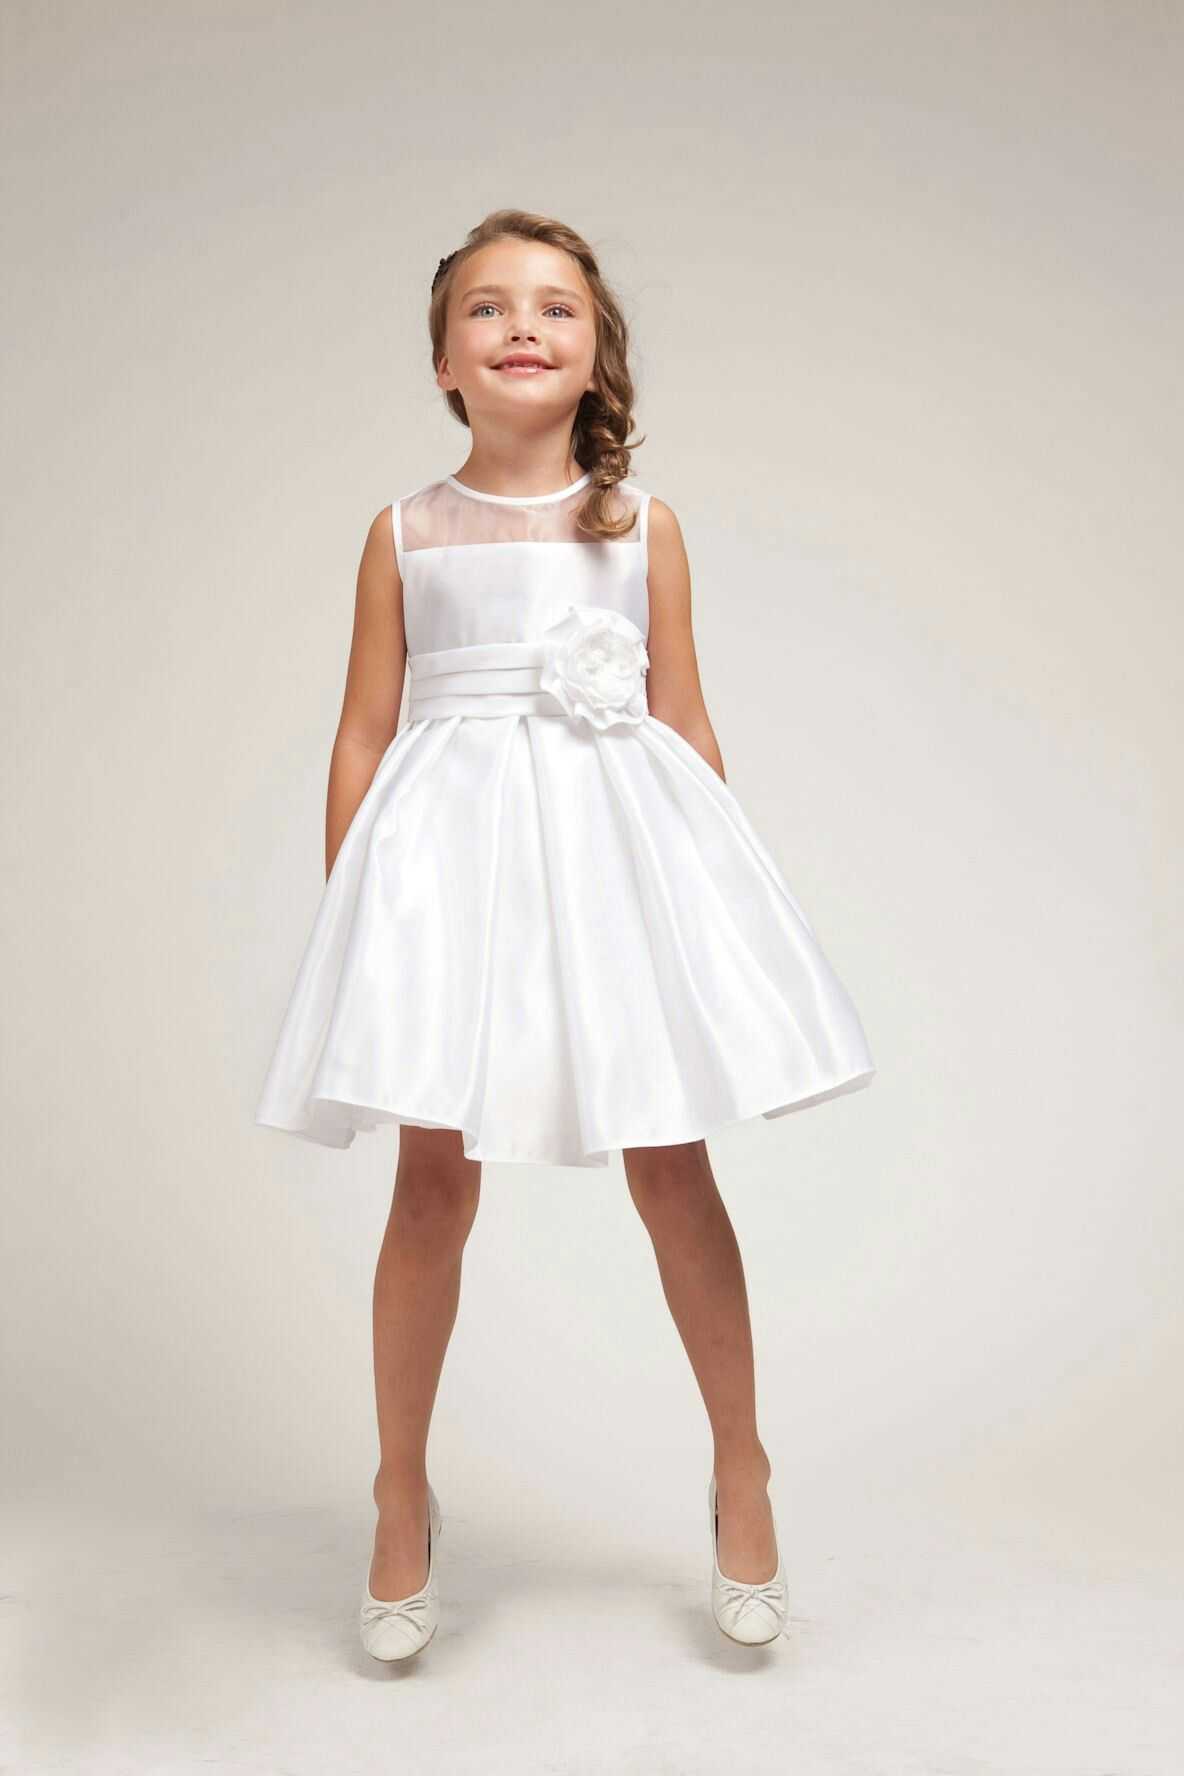 Pin by thuy do on flower girl dresses pinterest flower girl adorable kids canada is your best source for white flower girls dresses in brampton buy this dress from us for the kids in your wedding or the little izmirmasajfo